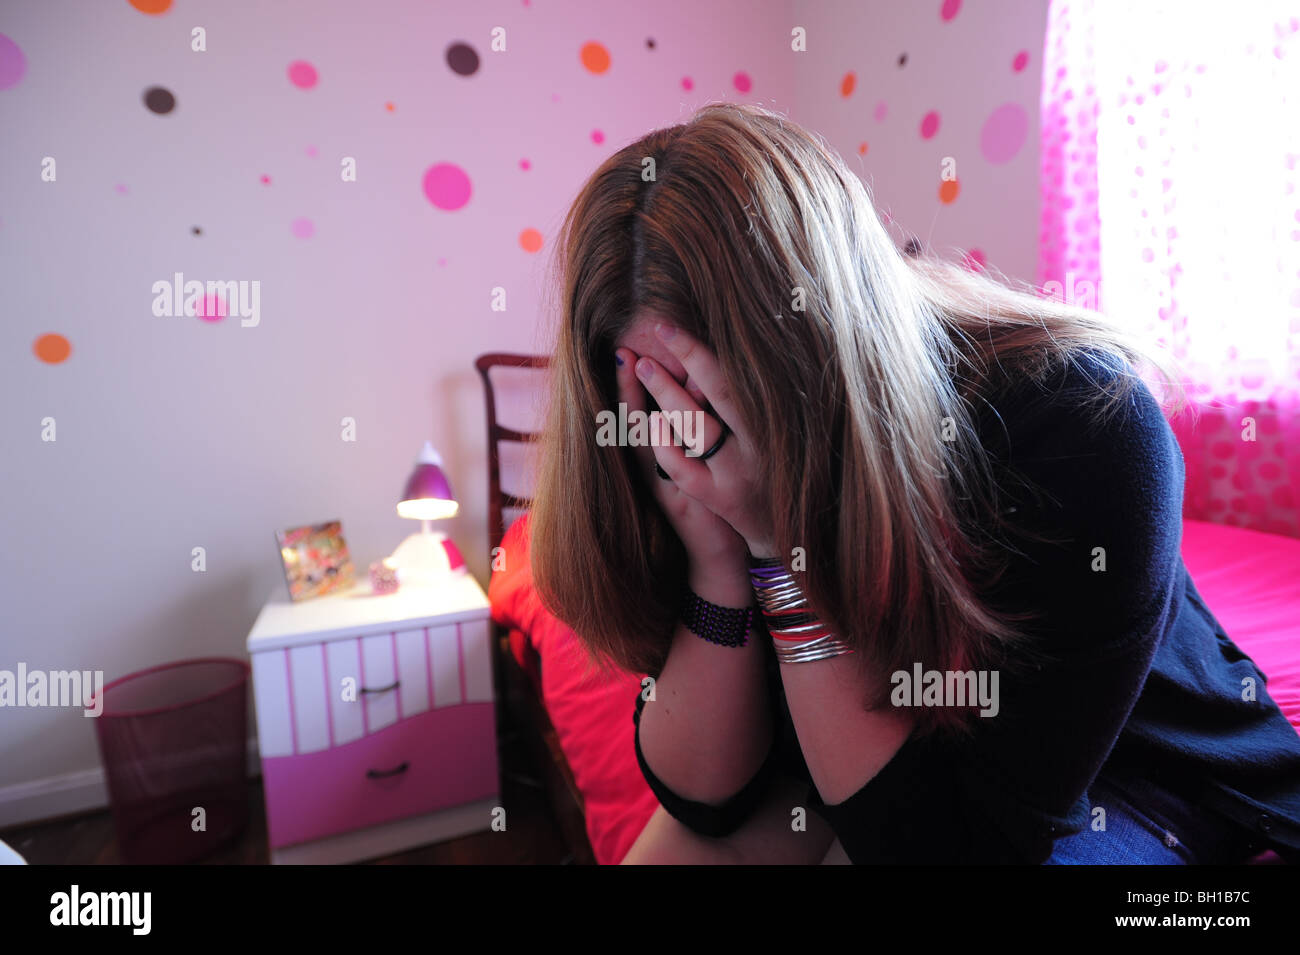 14-year-old-girl-teenager-with-depression-upset-in-her-bedroom-mr-BH1B7C.jpg